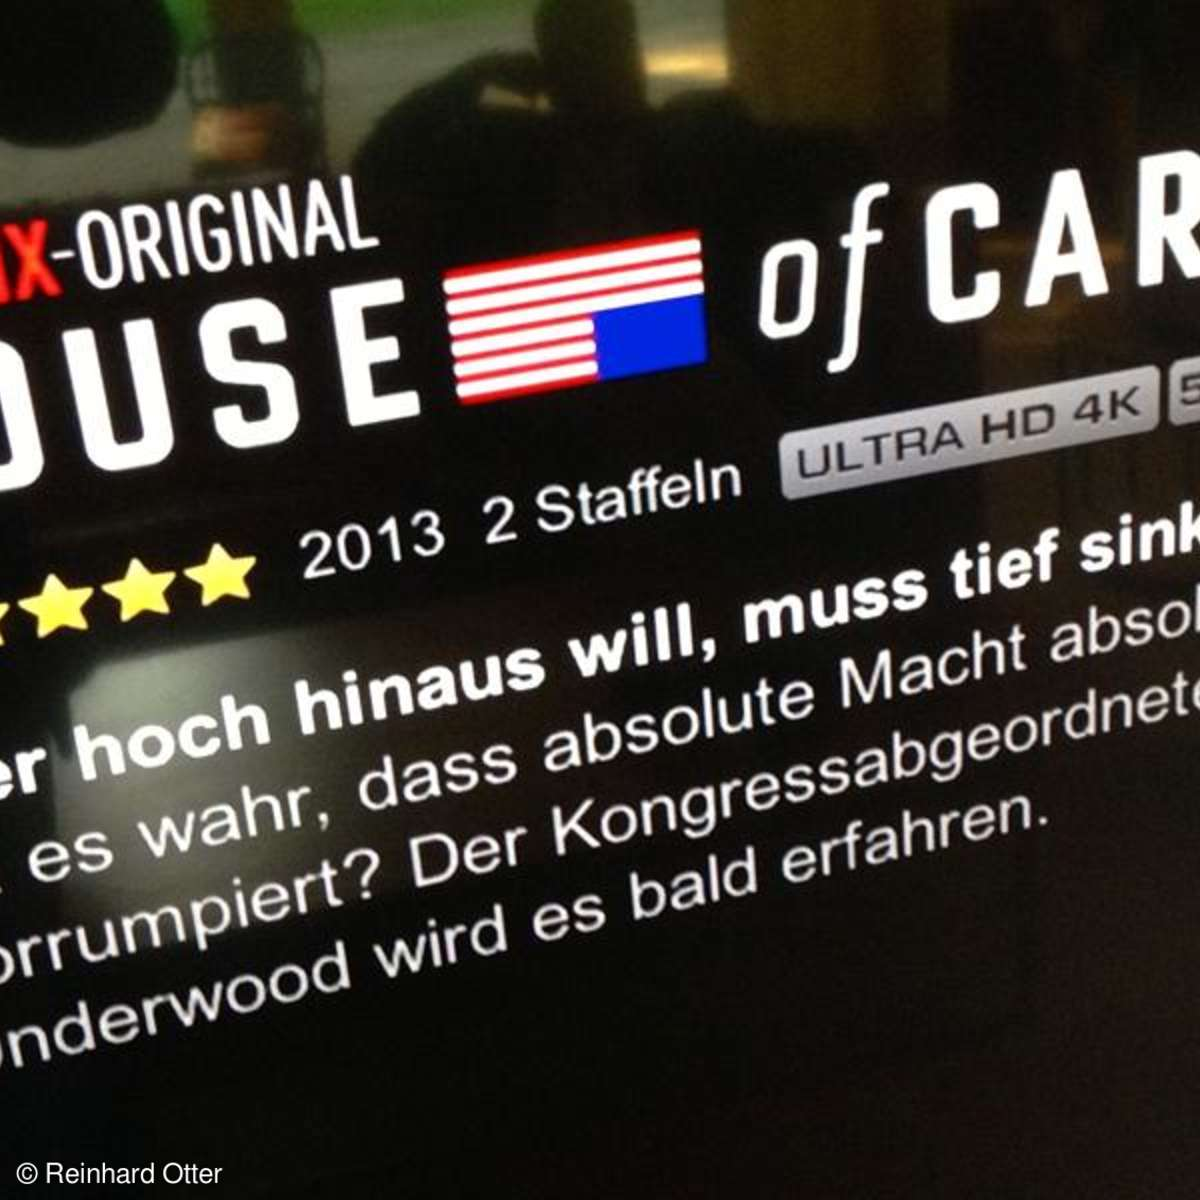 Netflix mit House of Cards